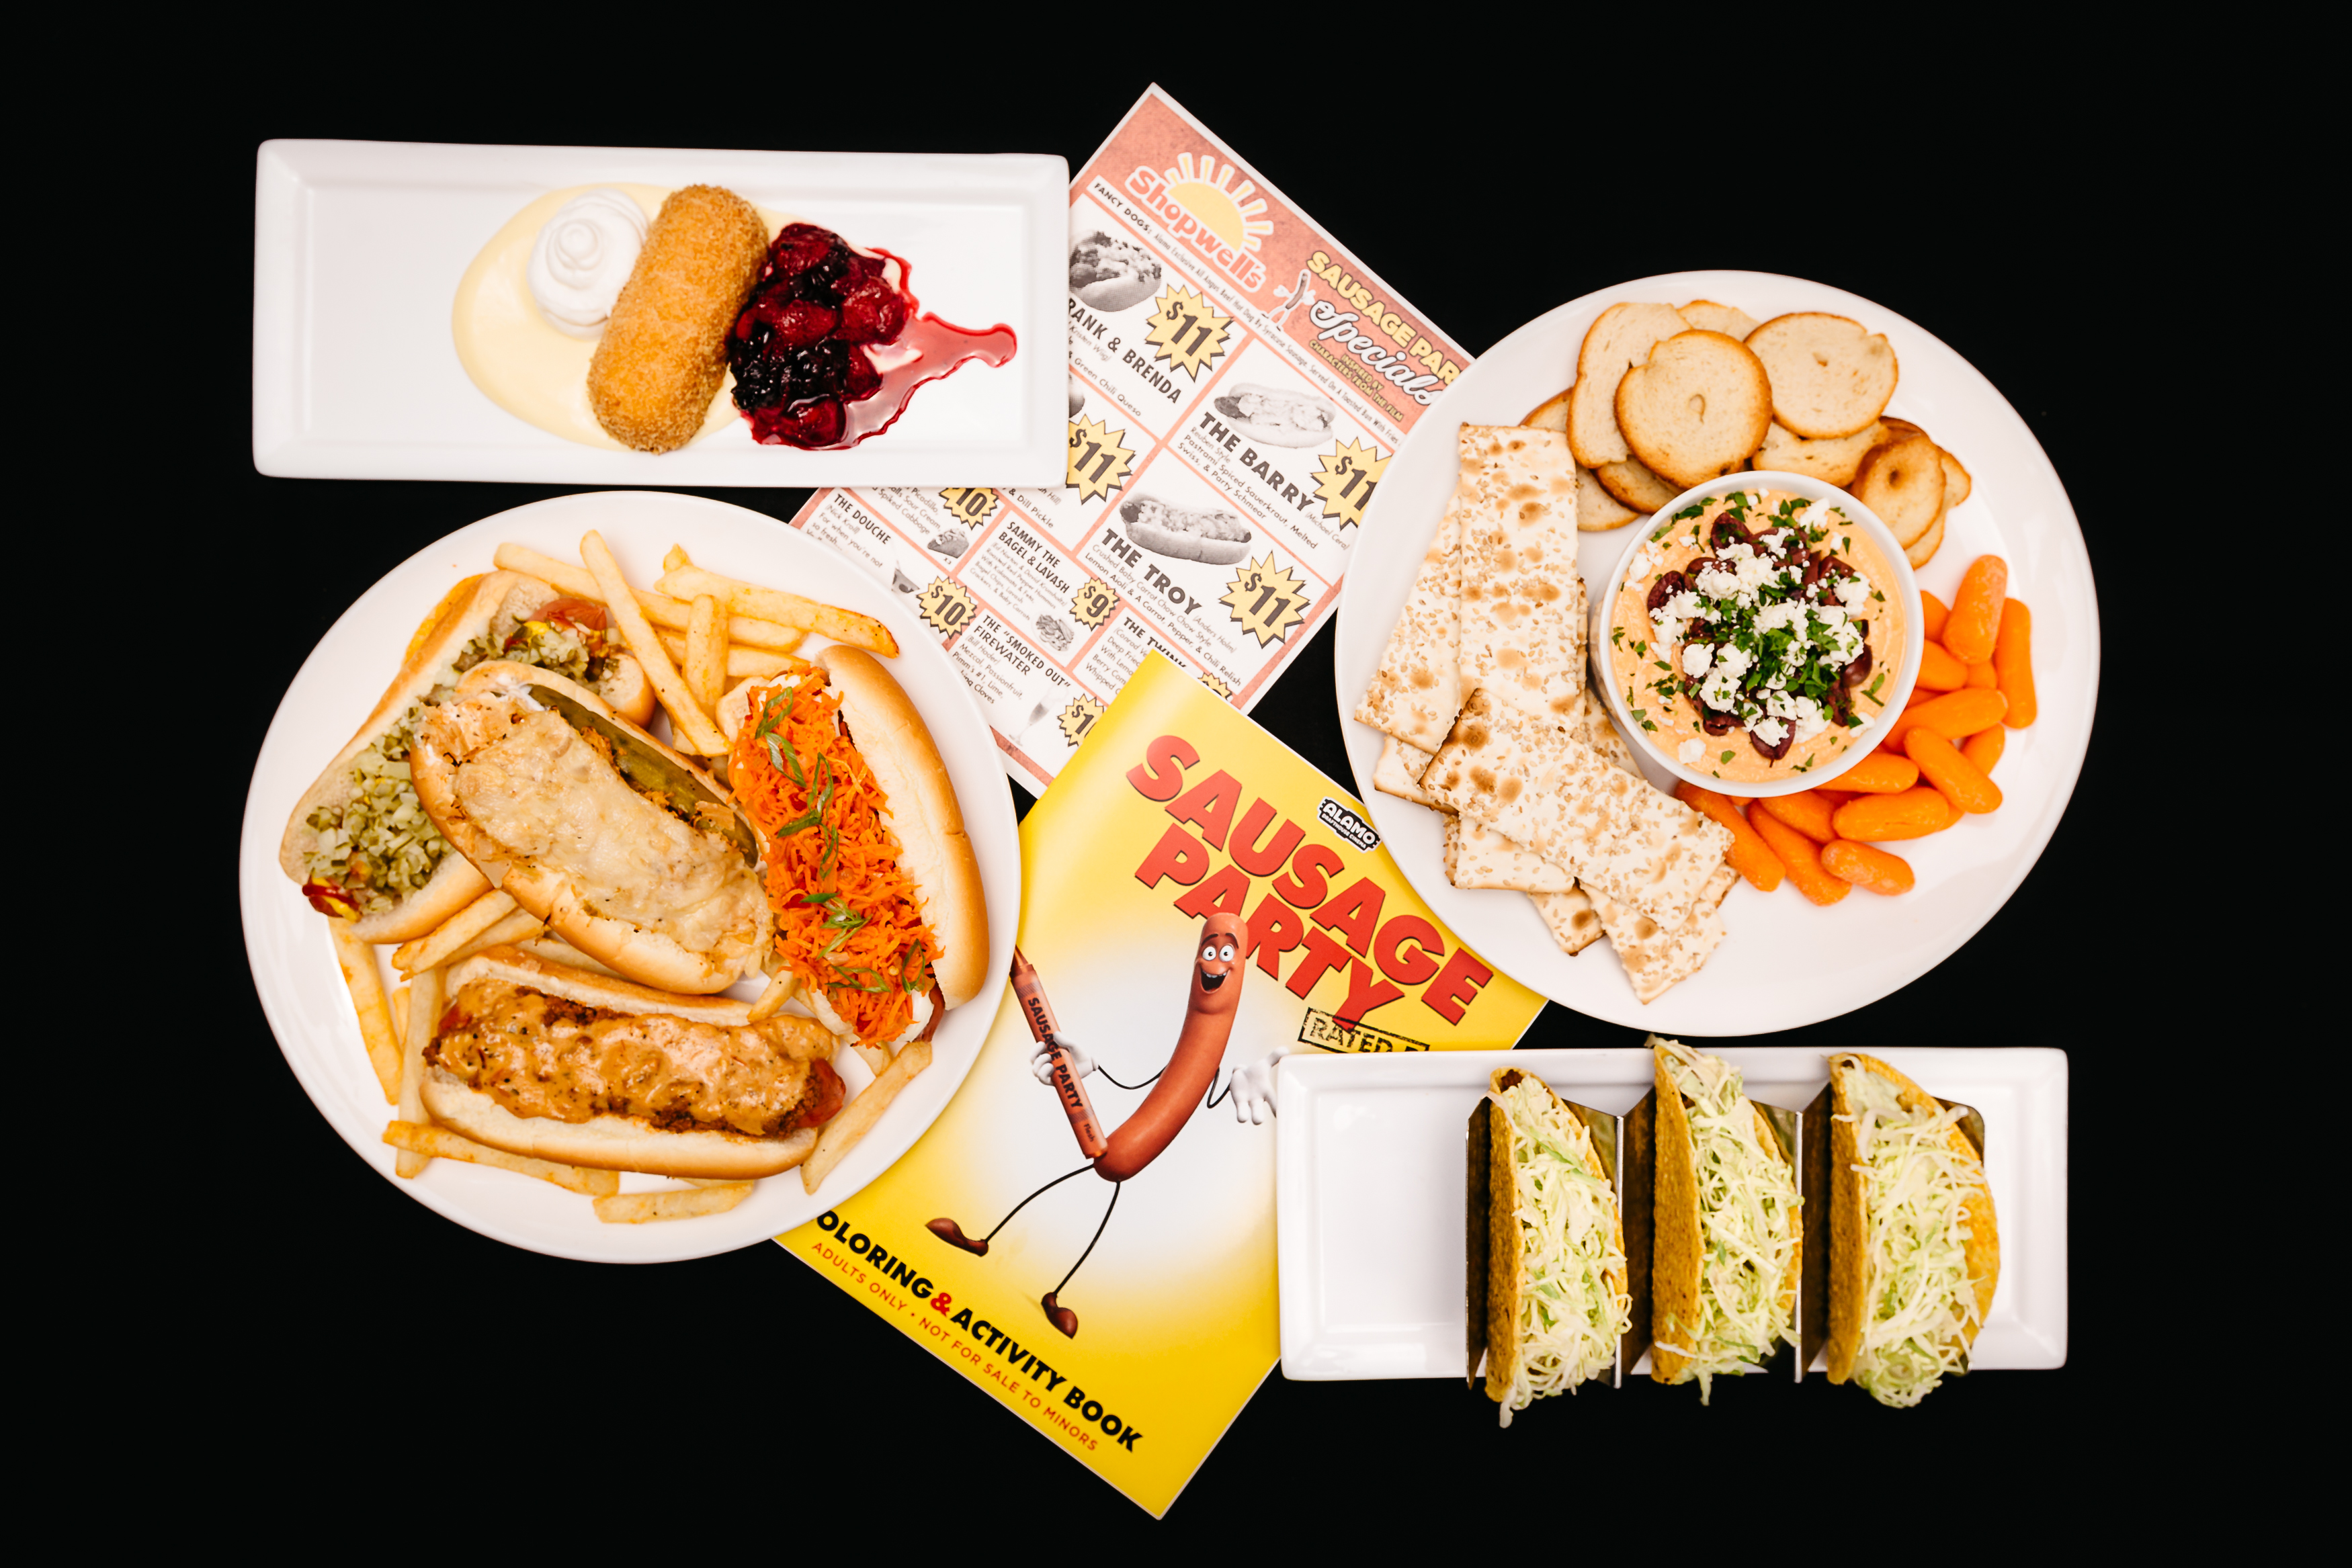 Alamo Drafthouse's Sausage Party dishes